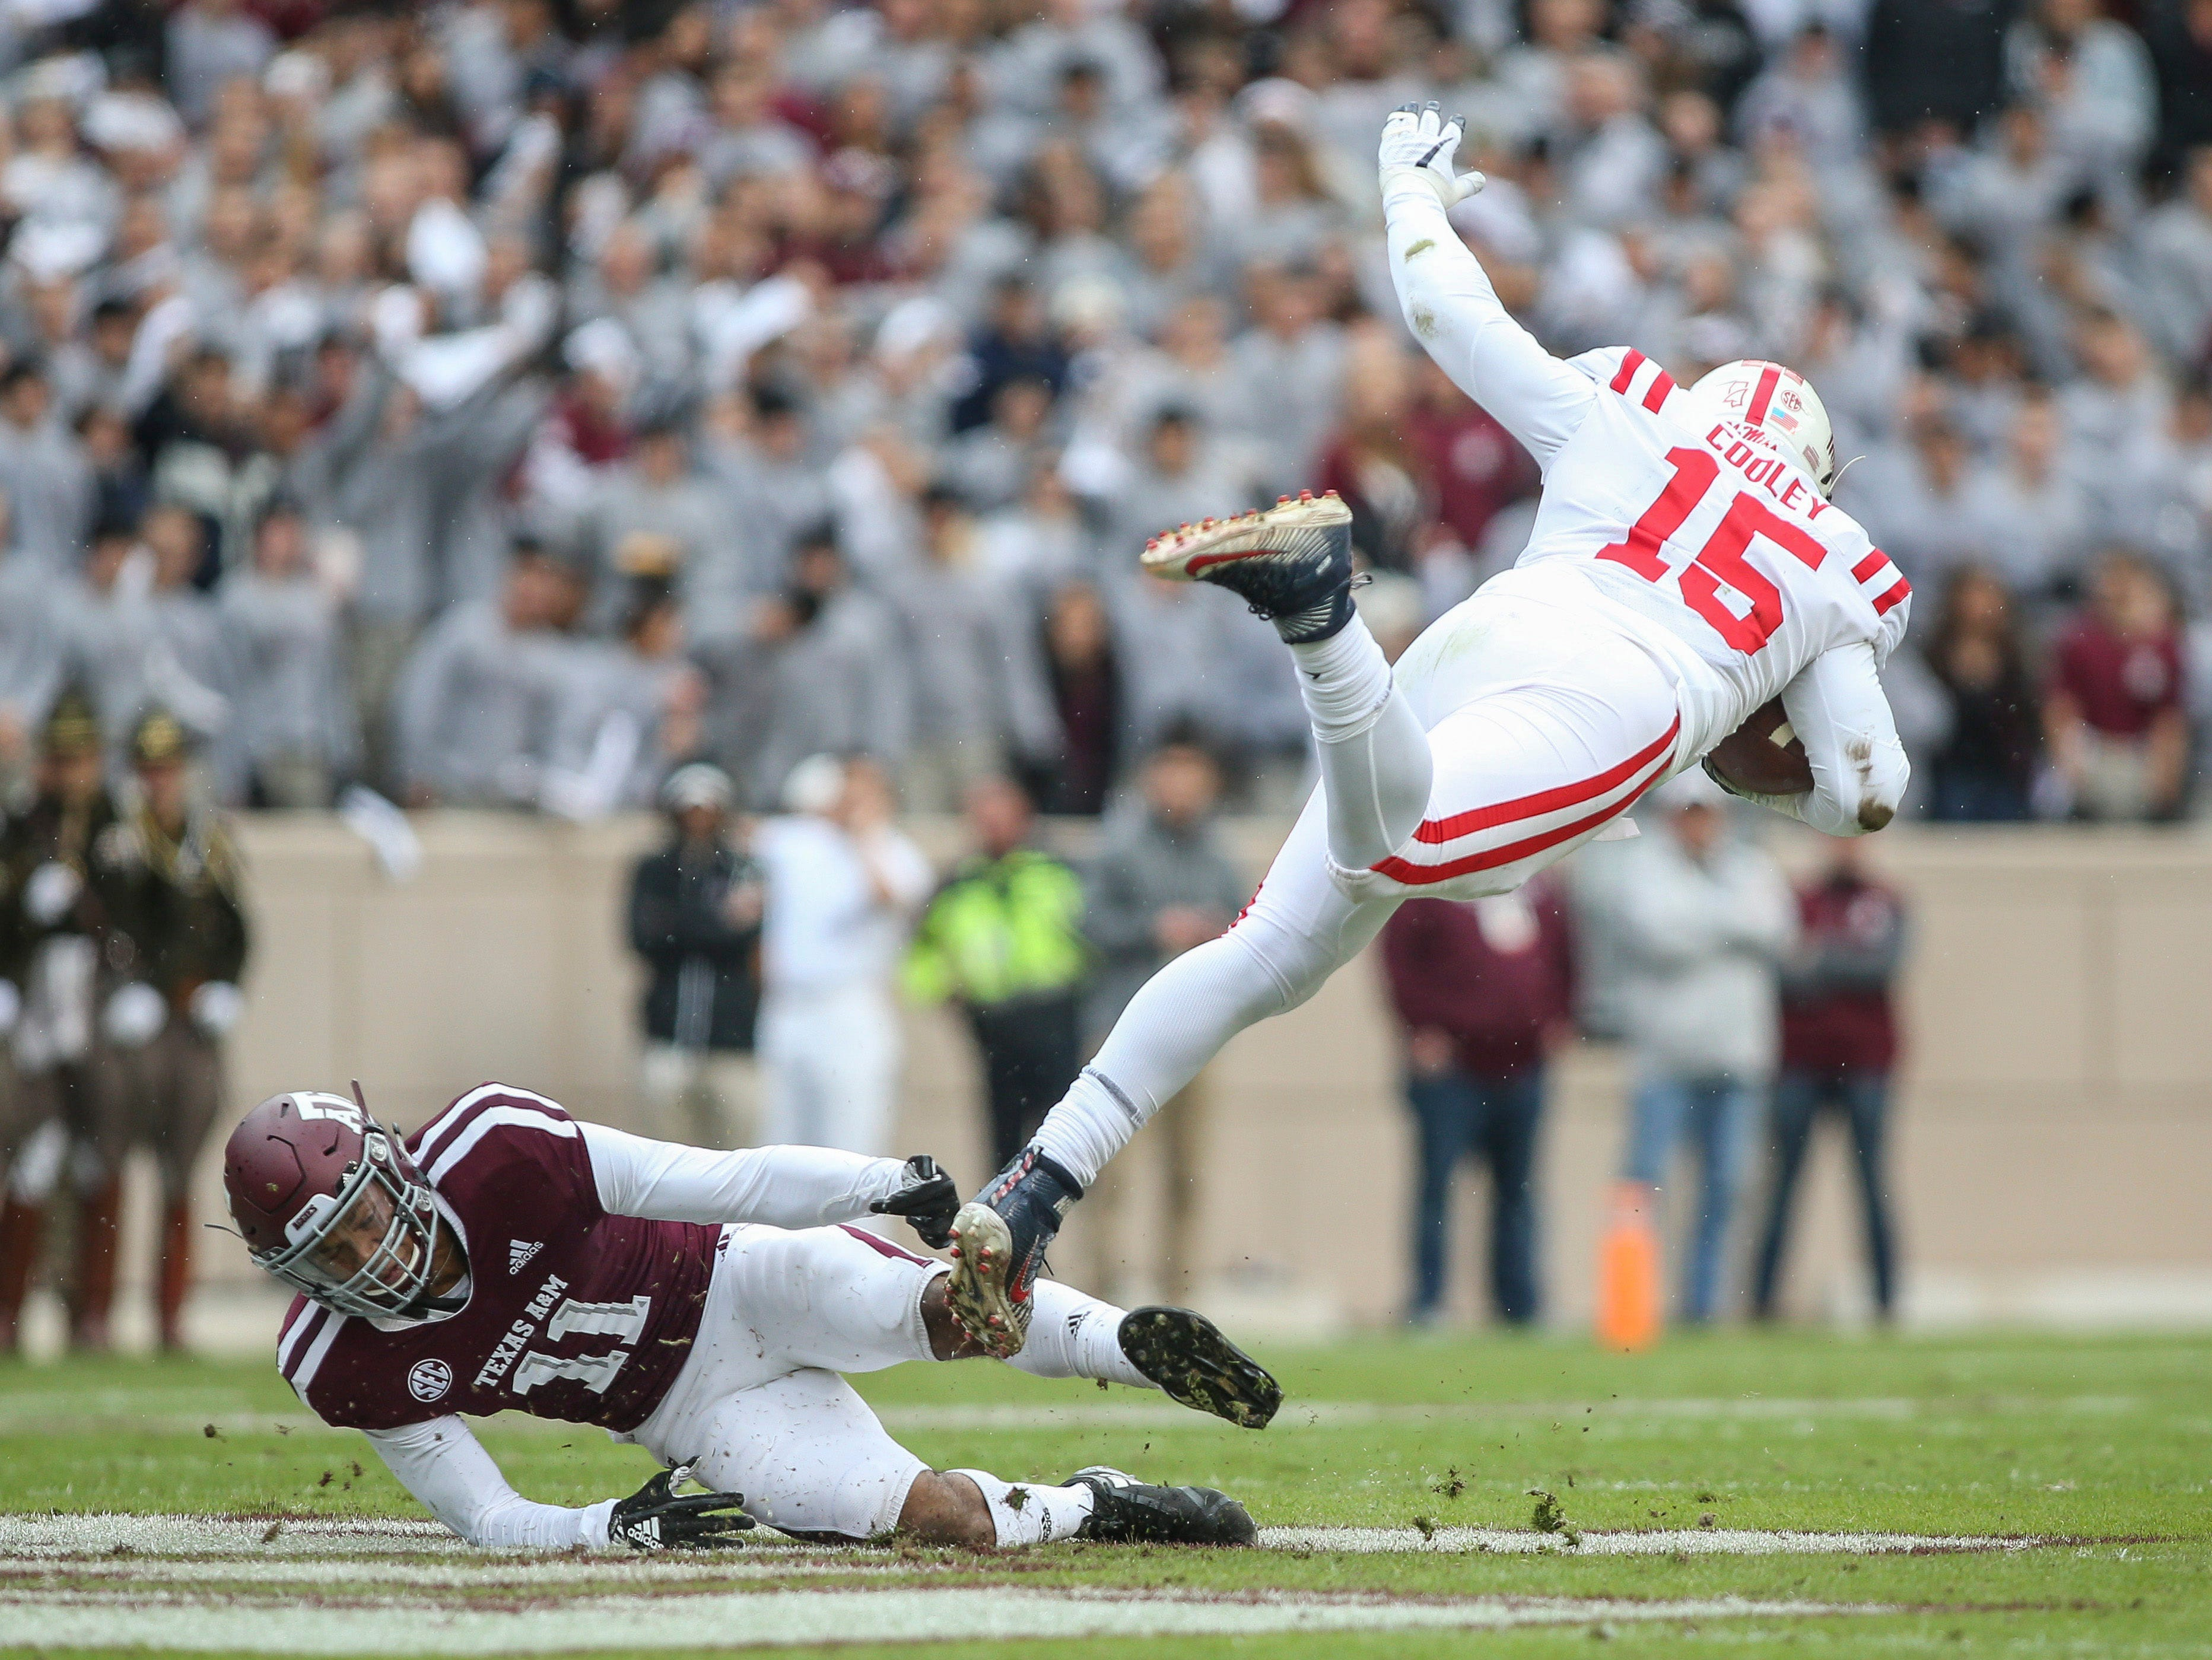 Mississippi Rebels tight end Octavious Cooley (15) leaps to avoid the tackle of Texas A&M Aggies defensive back Larry Pryor (11) after a reception during the first quarter at Kyle Field.